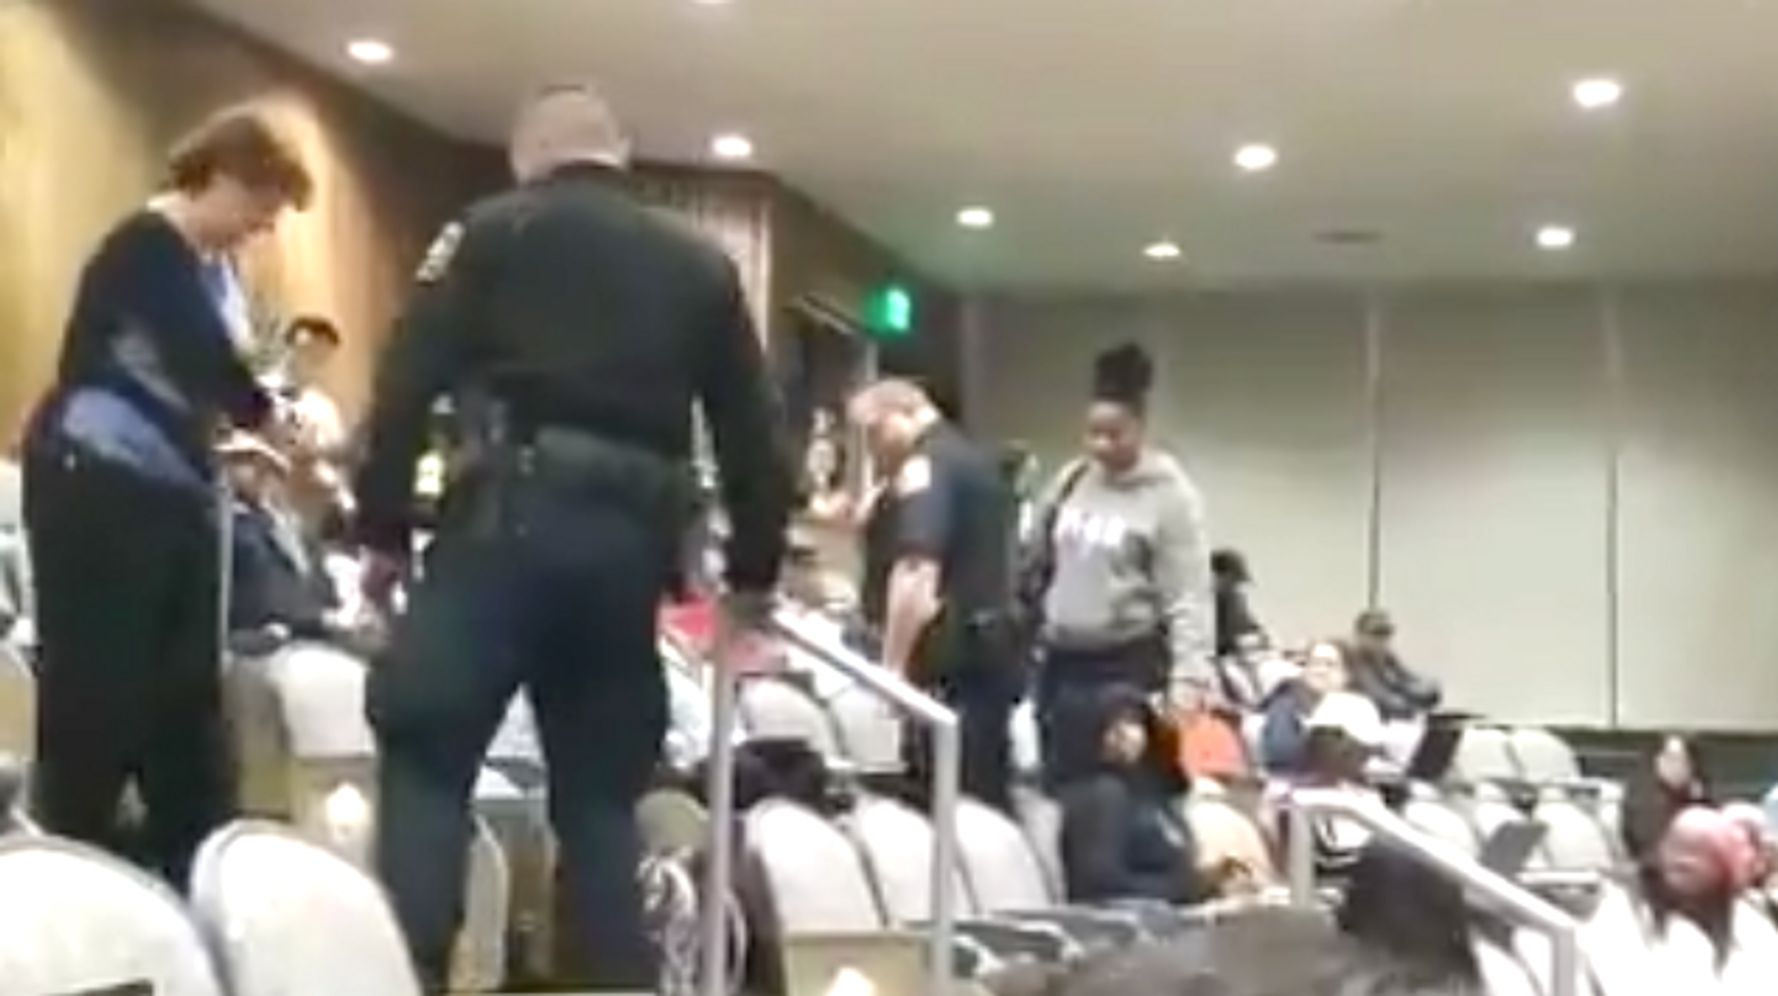 White Lecturer Who Called Cops On Black Student Wasn't